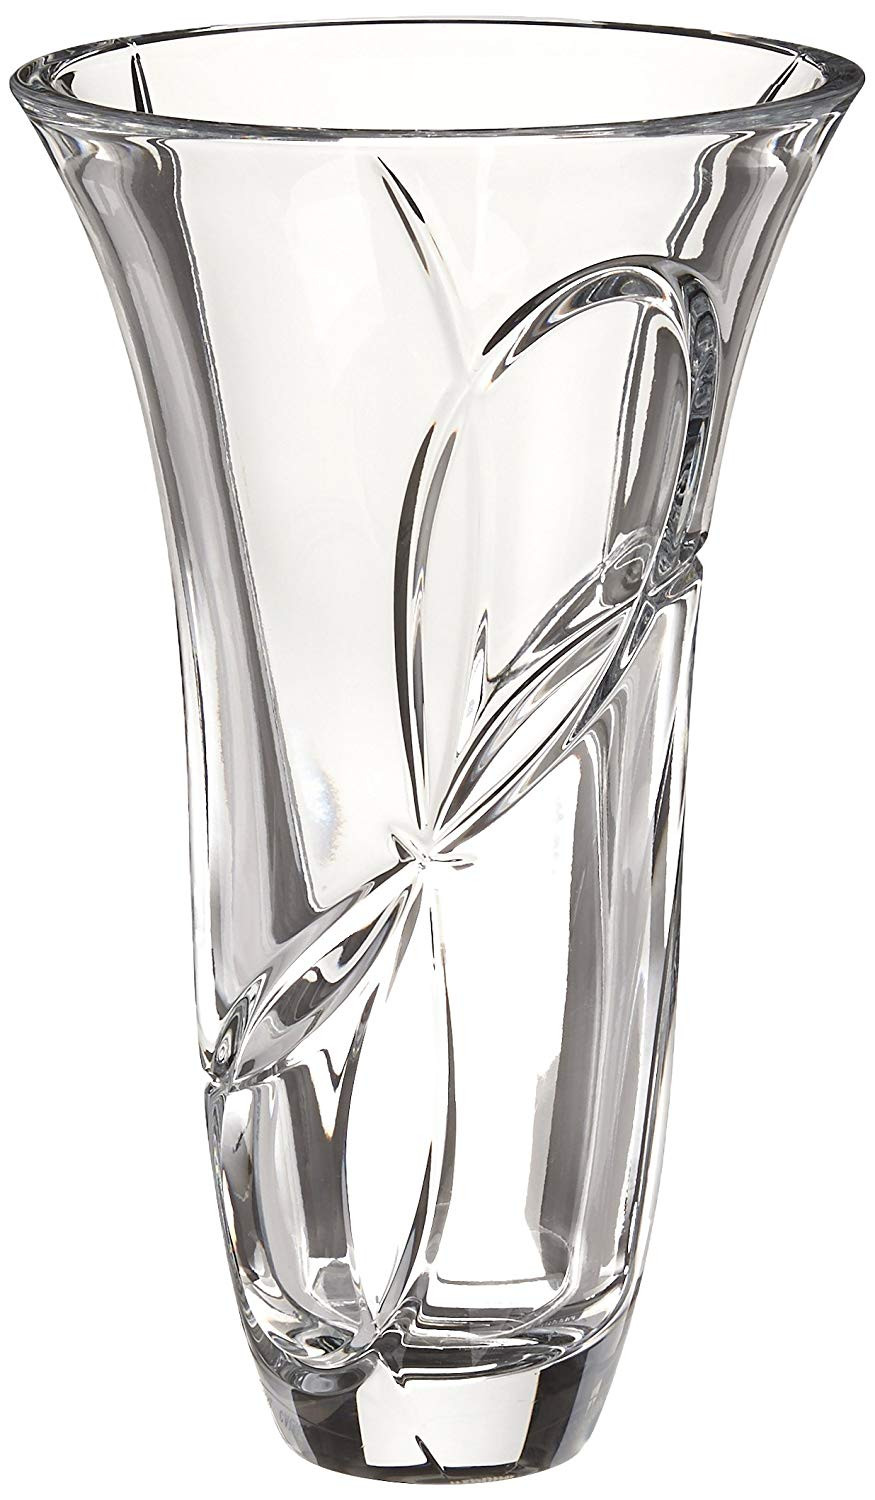 libbey cylinder bud vase of amazon com love knots mothers day vase 10 home kitchen throughout 81qug mzn3l sl1500